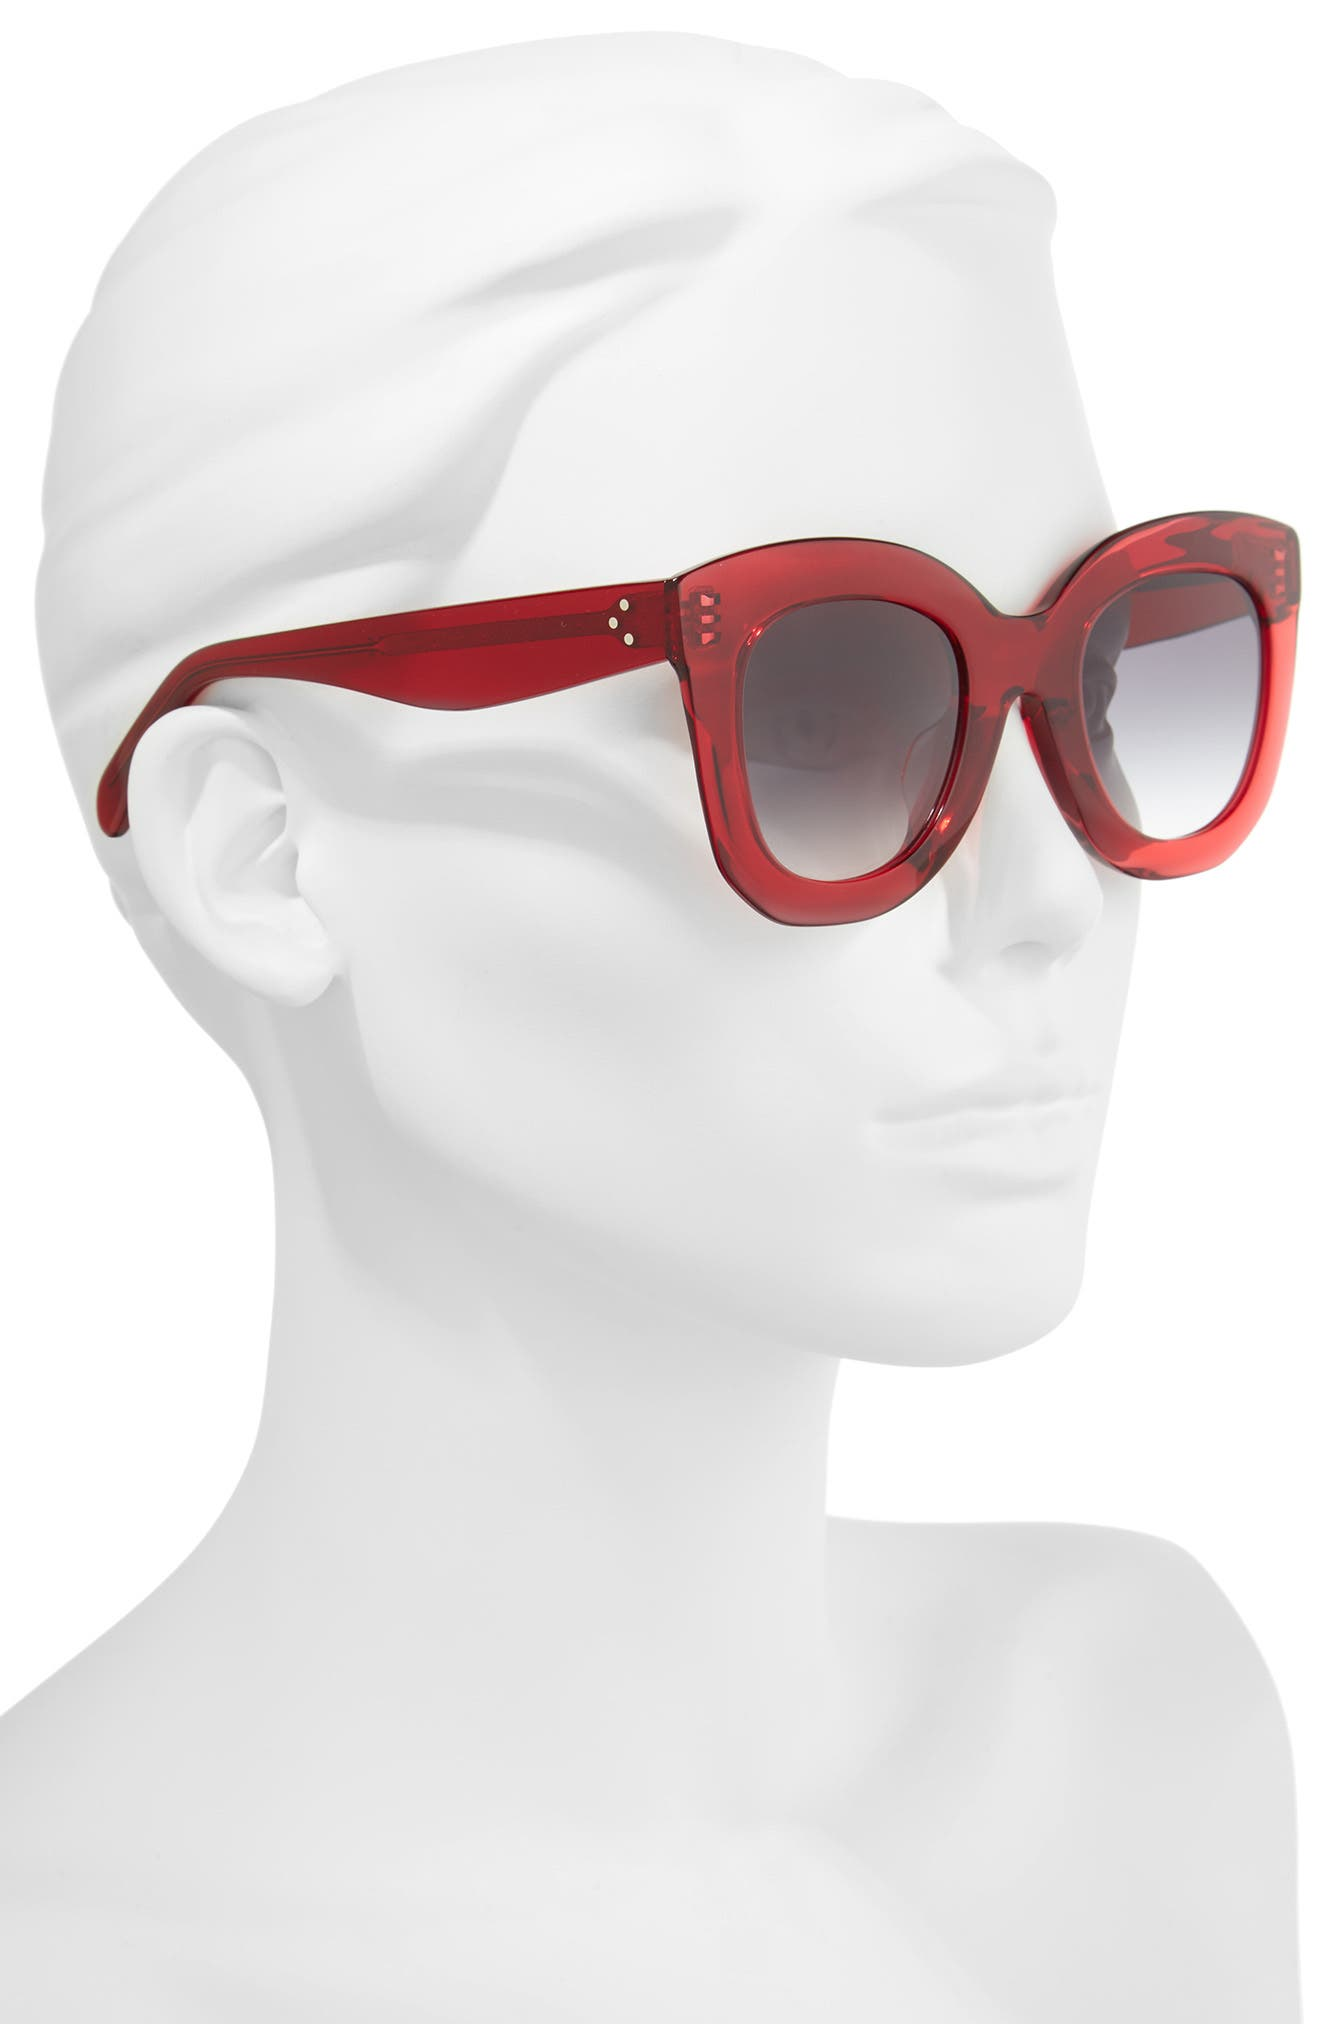 Special Fit 49mm Cat Eye Sunglasses,                             Alternate thumbnail 2, color,                             Red/ Smoke